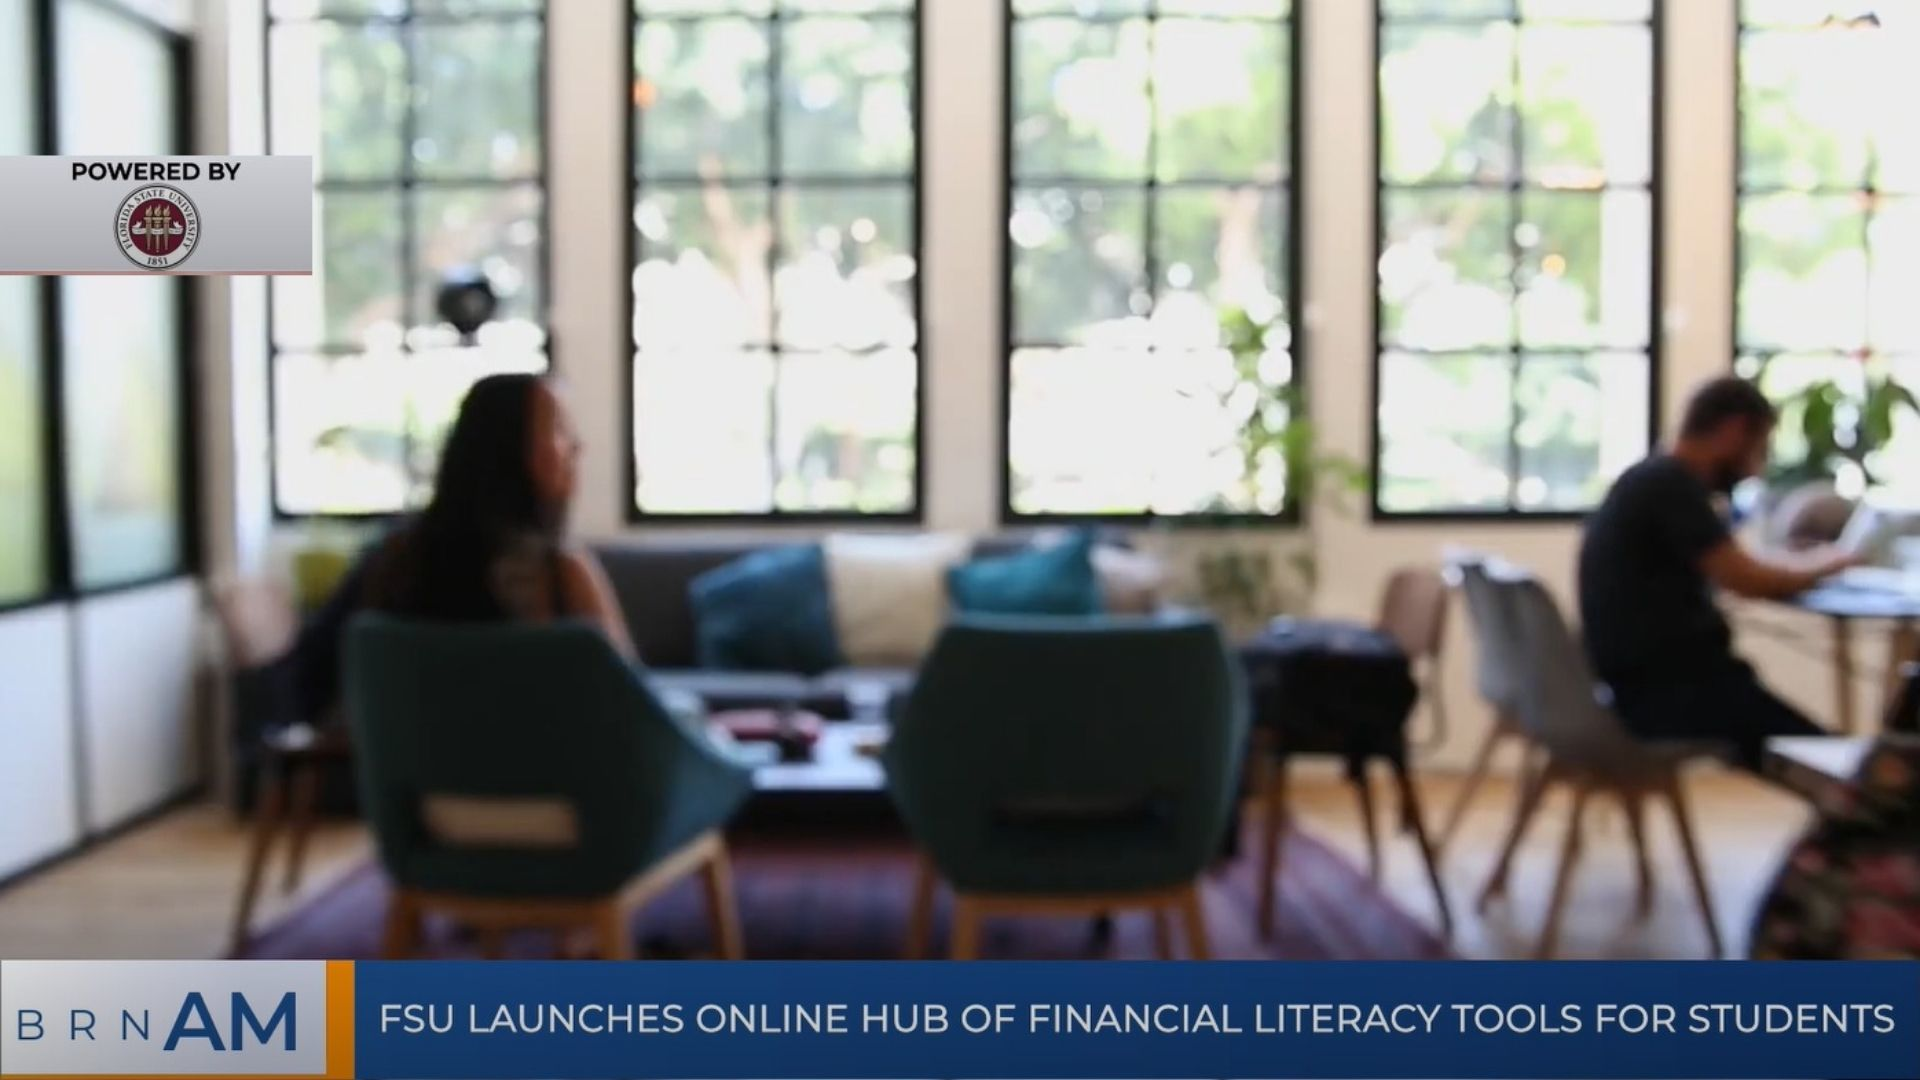 BRN AM | FSU launches online hub of financial literacy tools for students